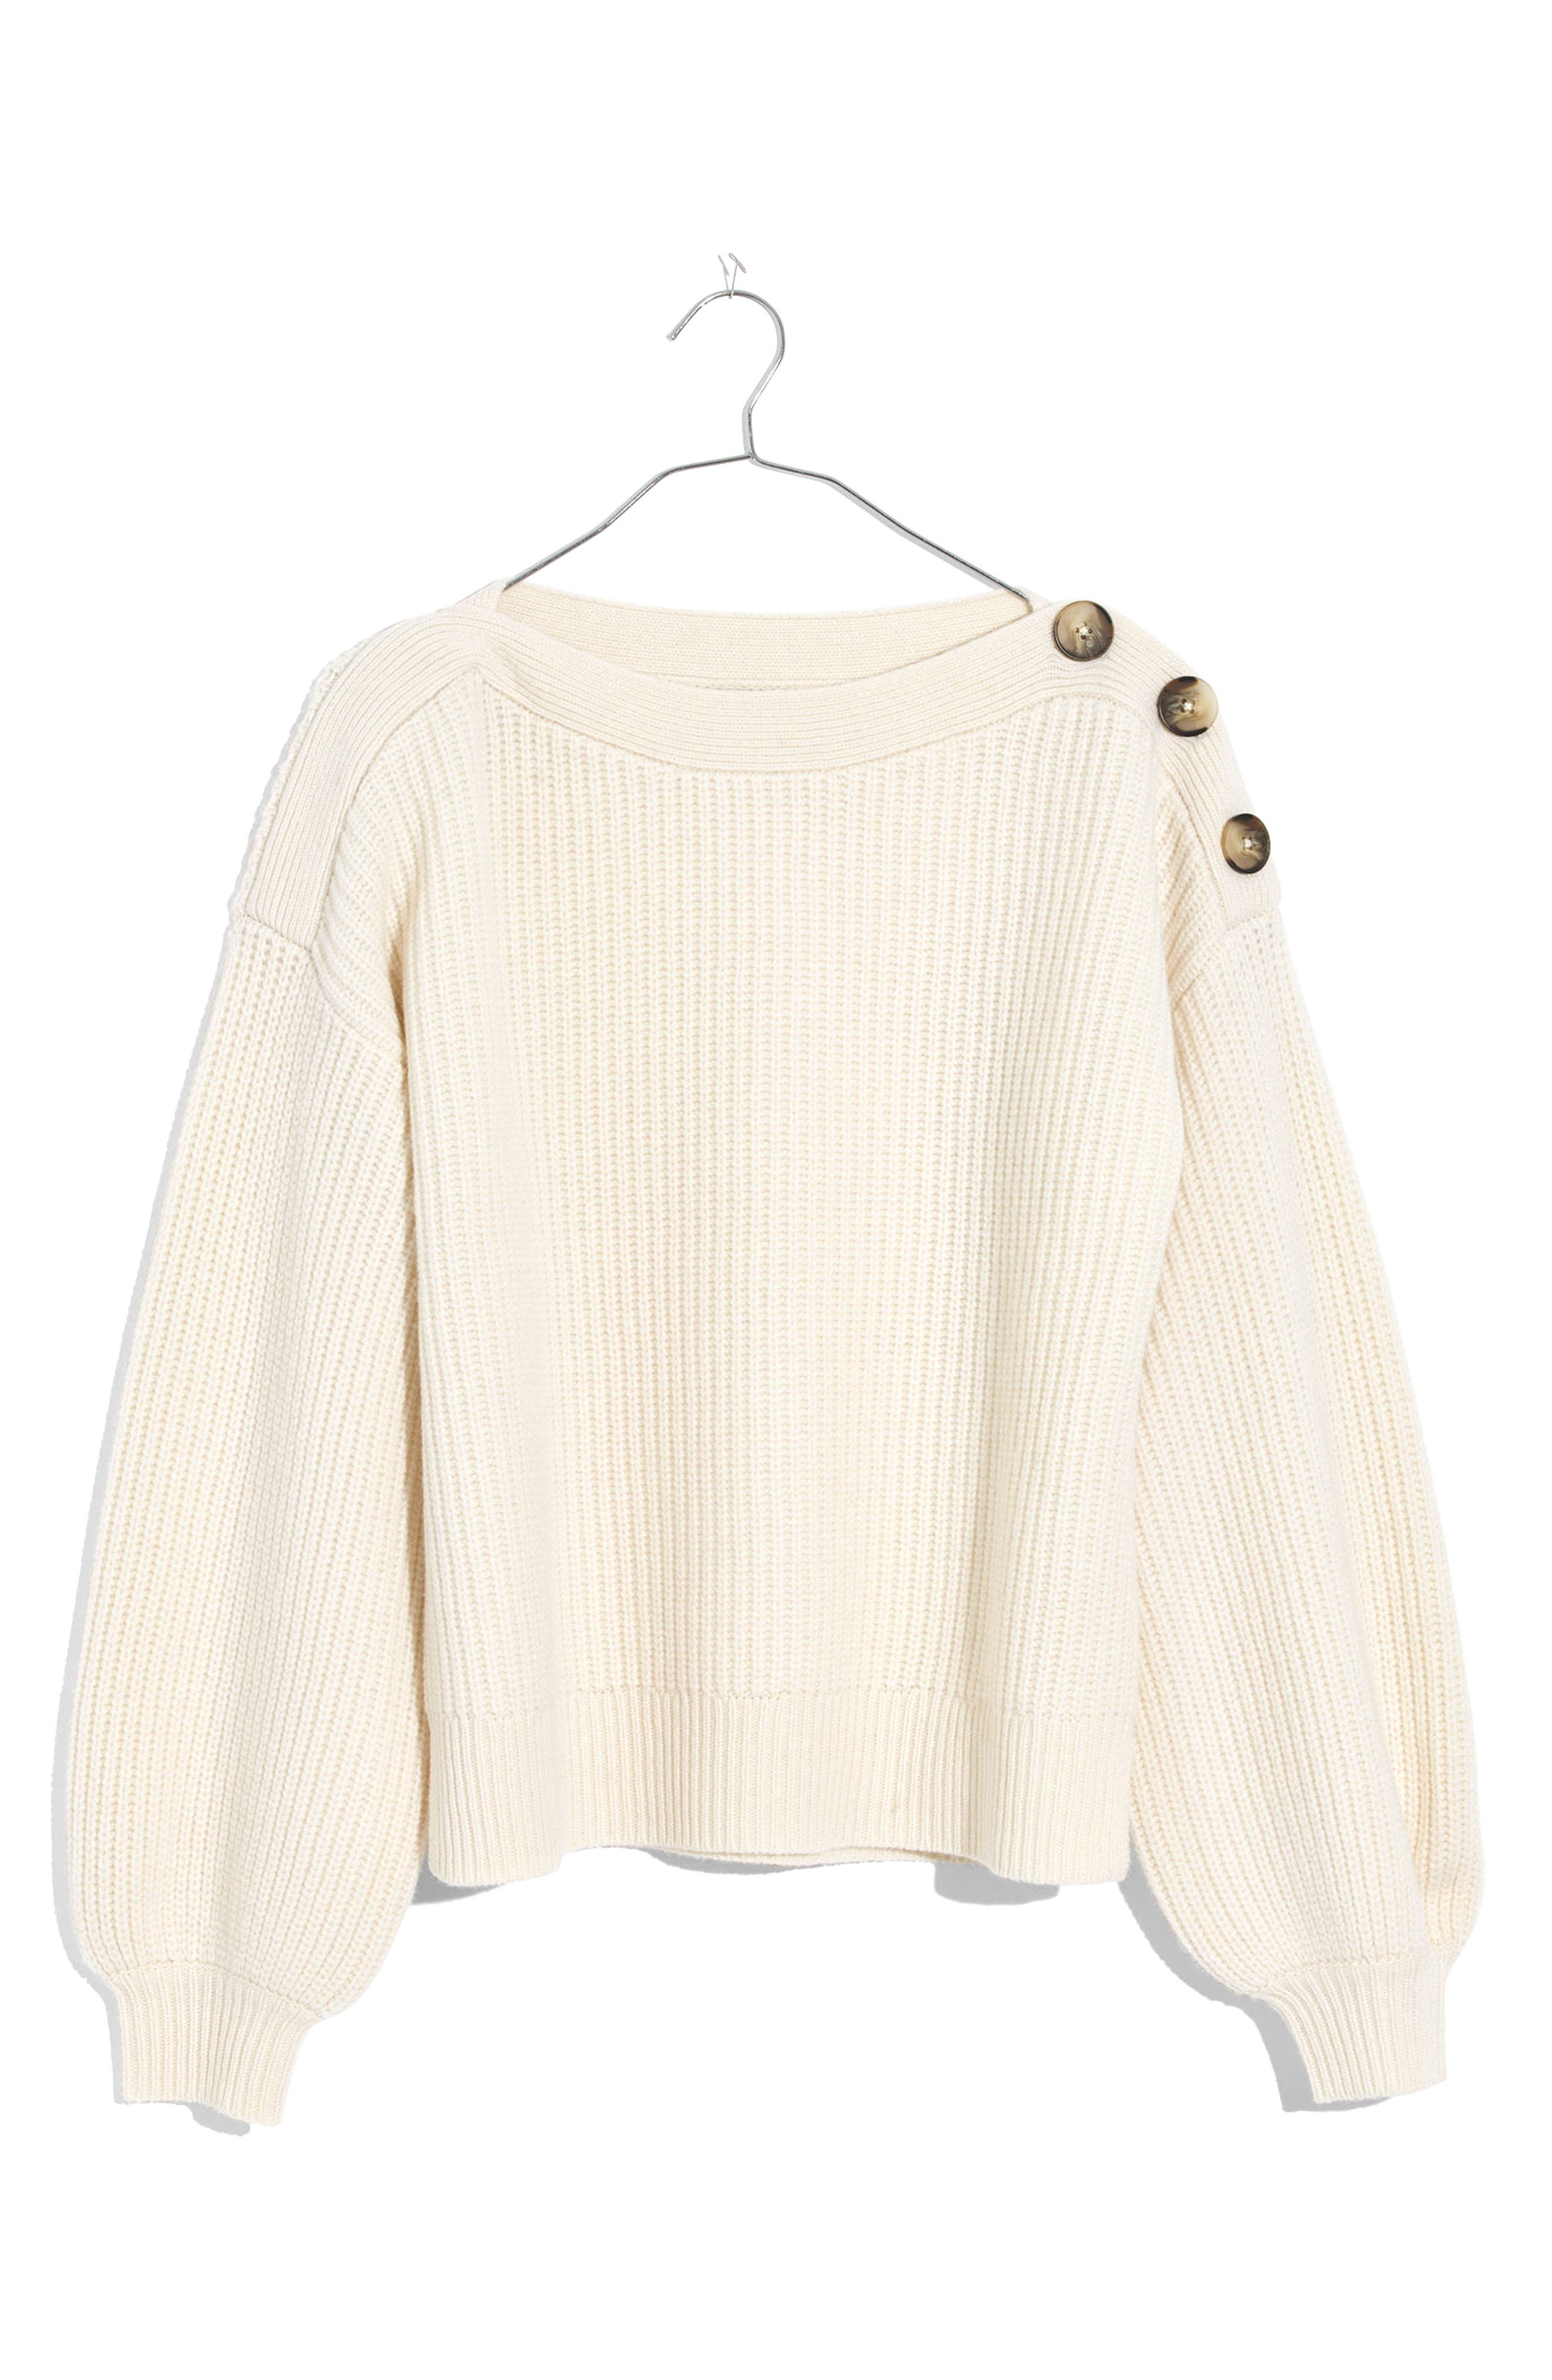 Boatneck Bubble Sleeve Sweater,                             Alternate thumbnail 4, color,                             100